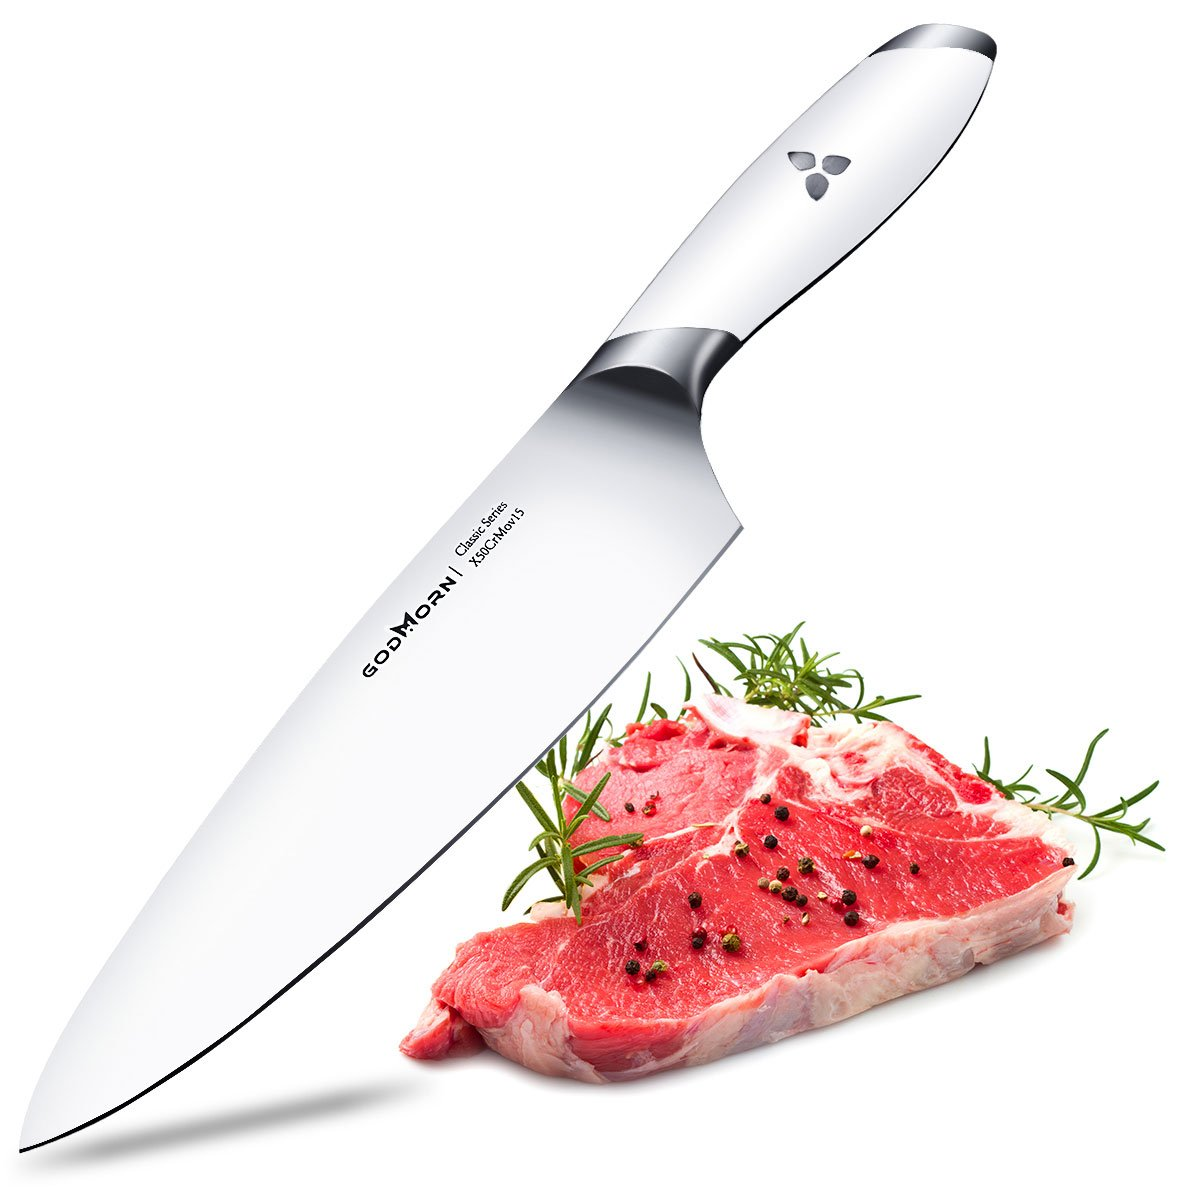 Godmorn Chef Knife 8 inch, Kitchen Knife,German High Carbon Stainless Steel,with Ergonomic White Handle, Ultra Sharp & Well Balance for Mom Kitchen and Home